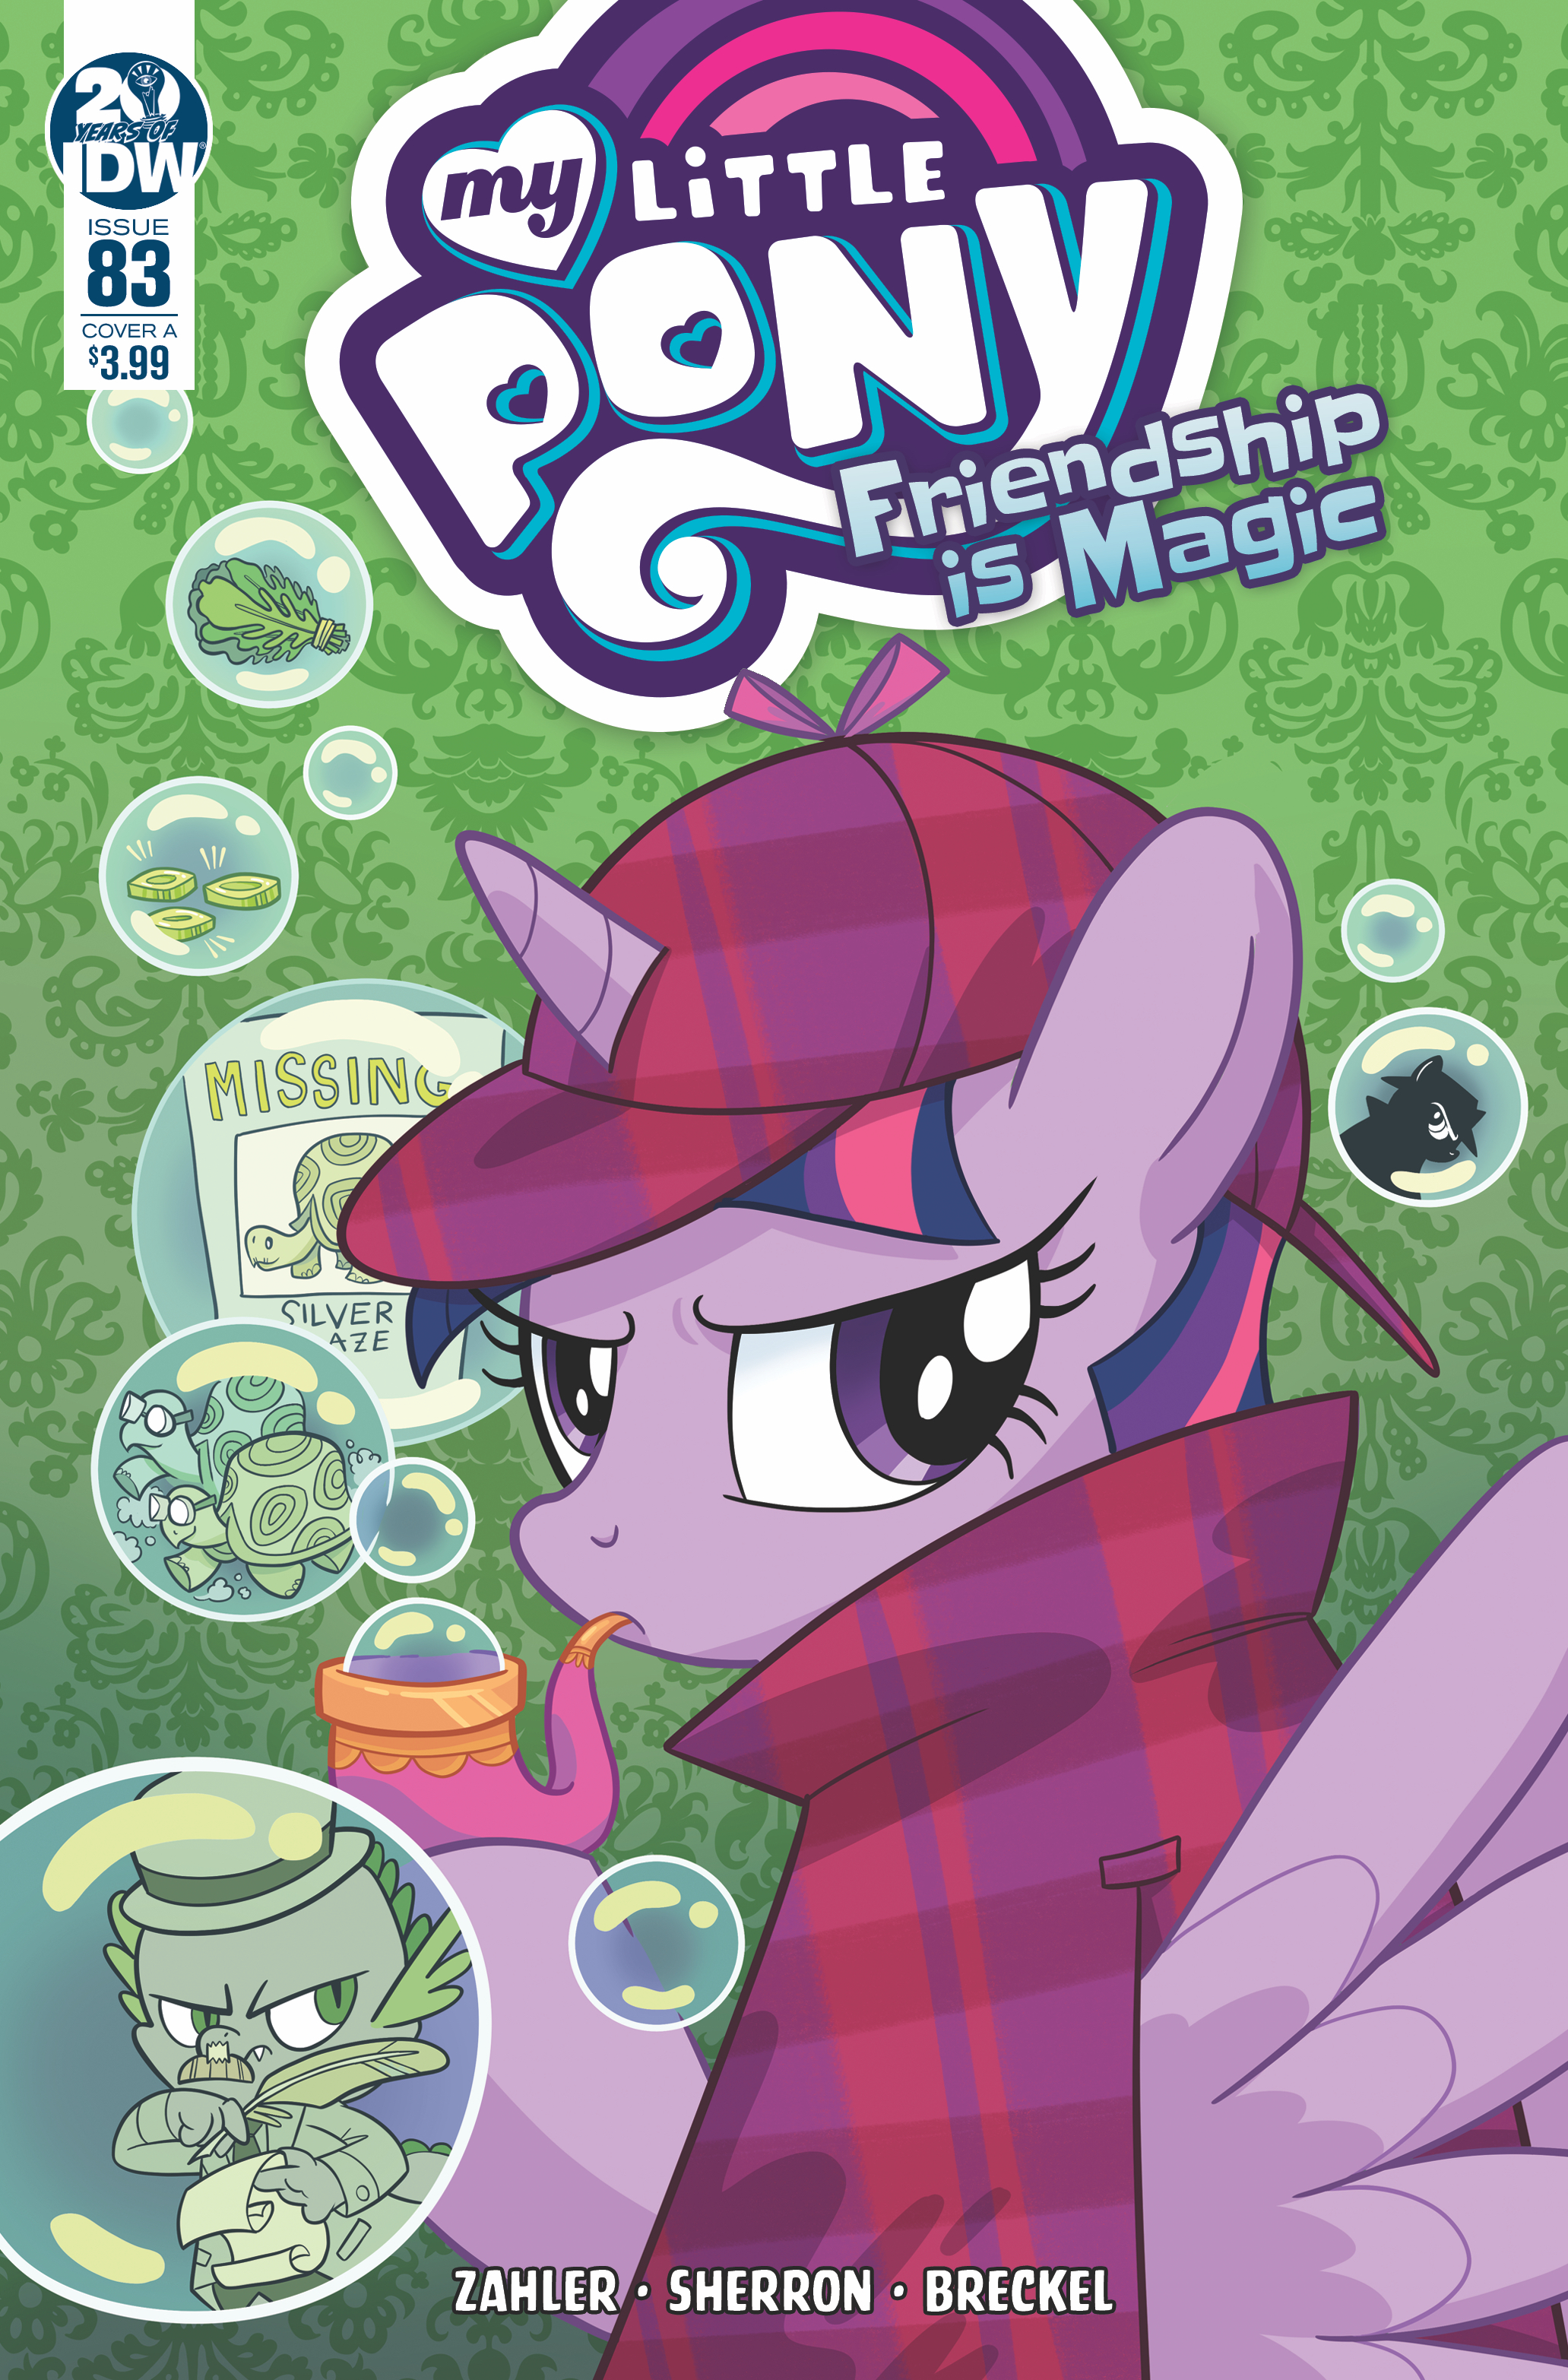 Friendship is Magic Issue 83